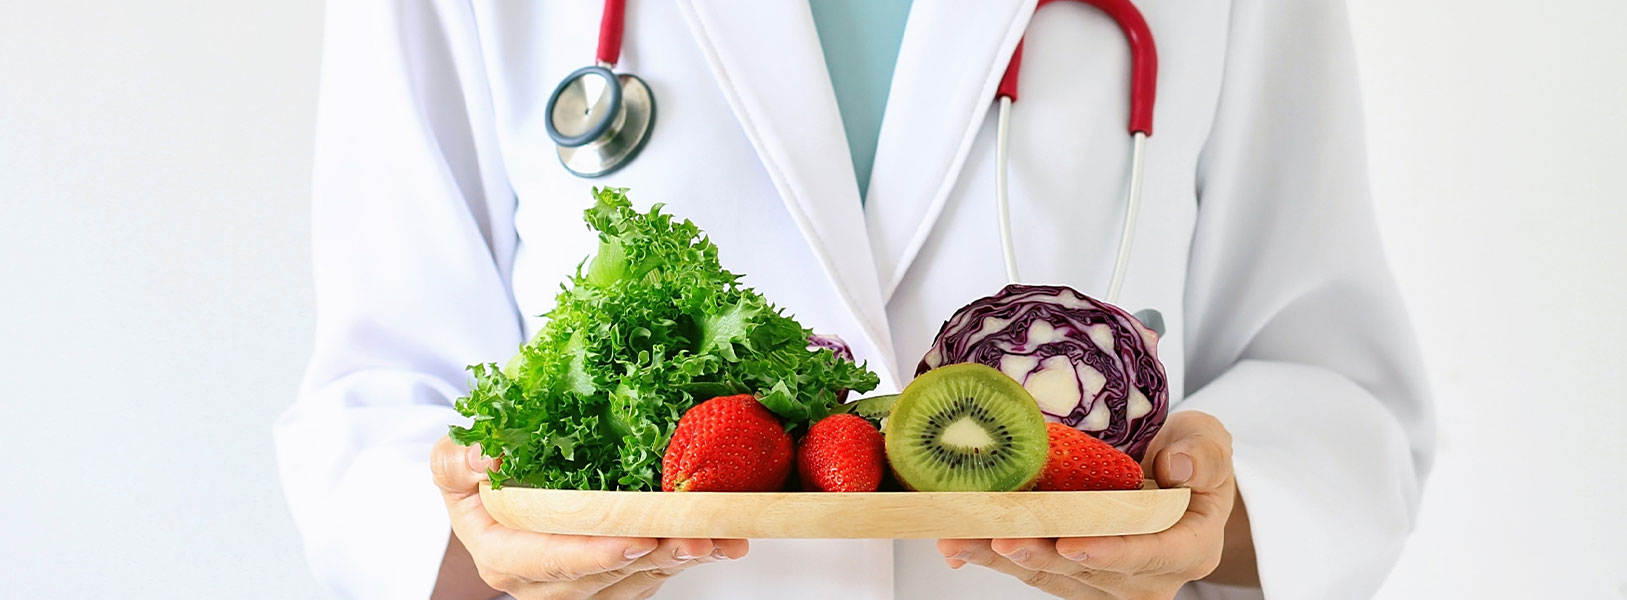 A nutritionist is holding a plate of fruit and vegetables